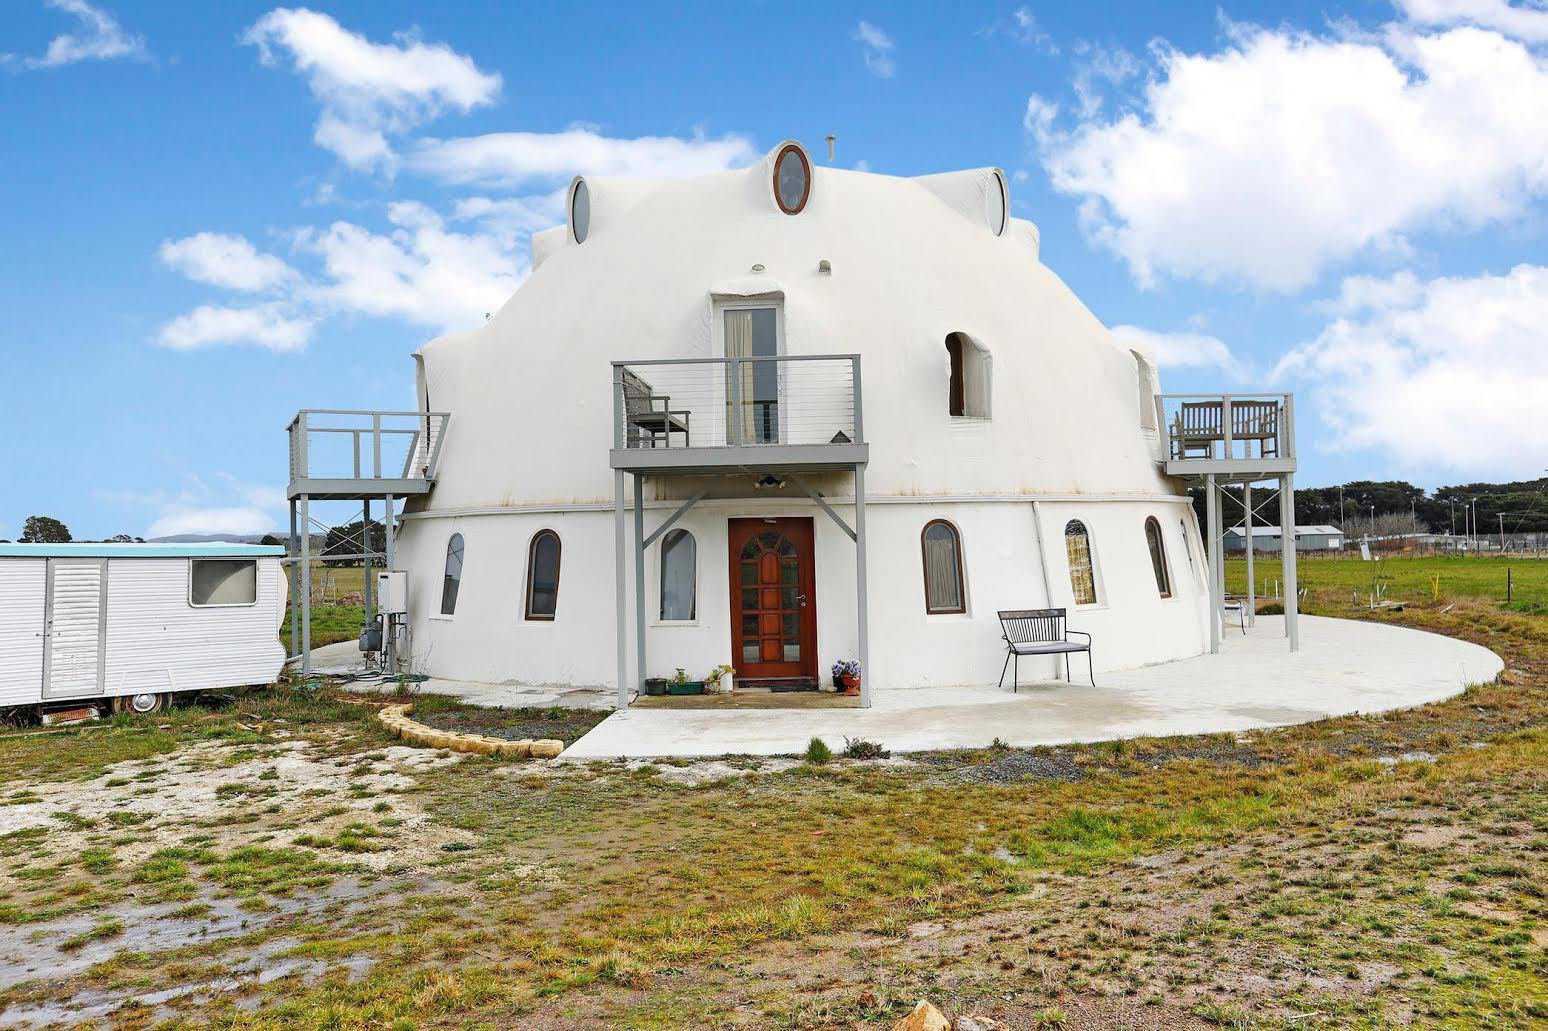 There's no place like dome: spacious dome home for sale in ...